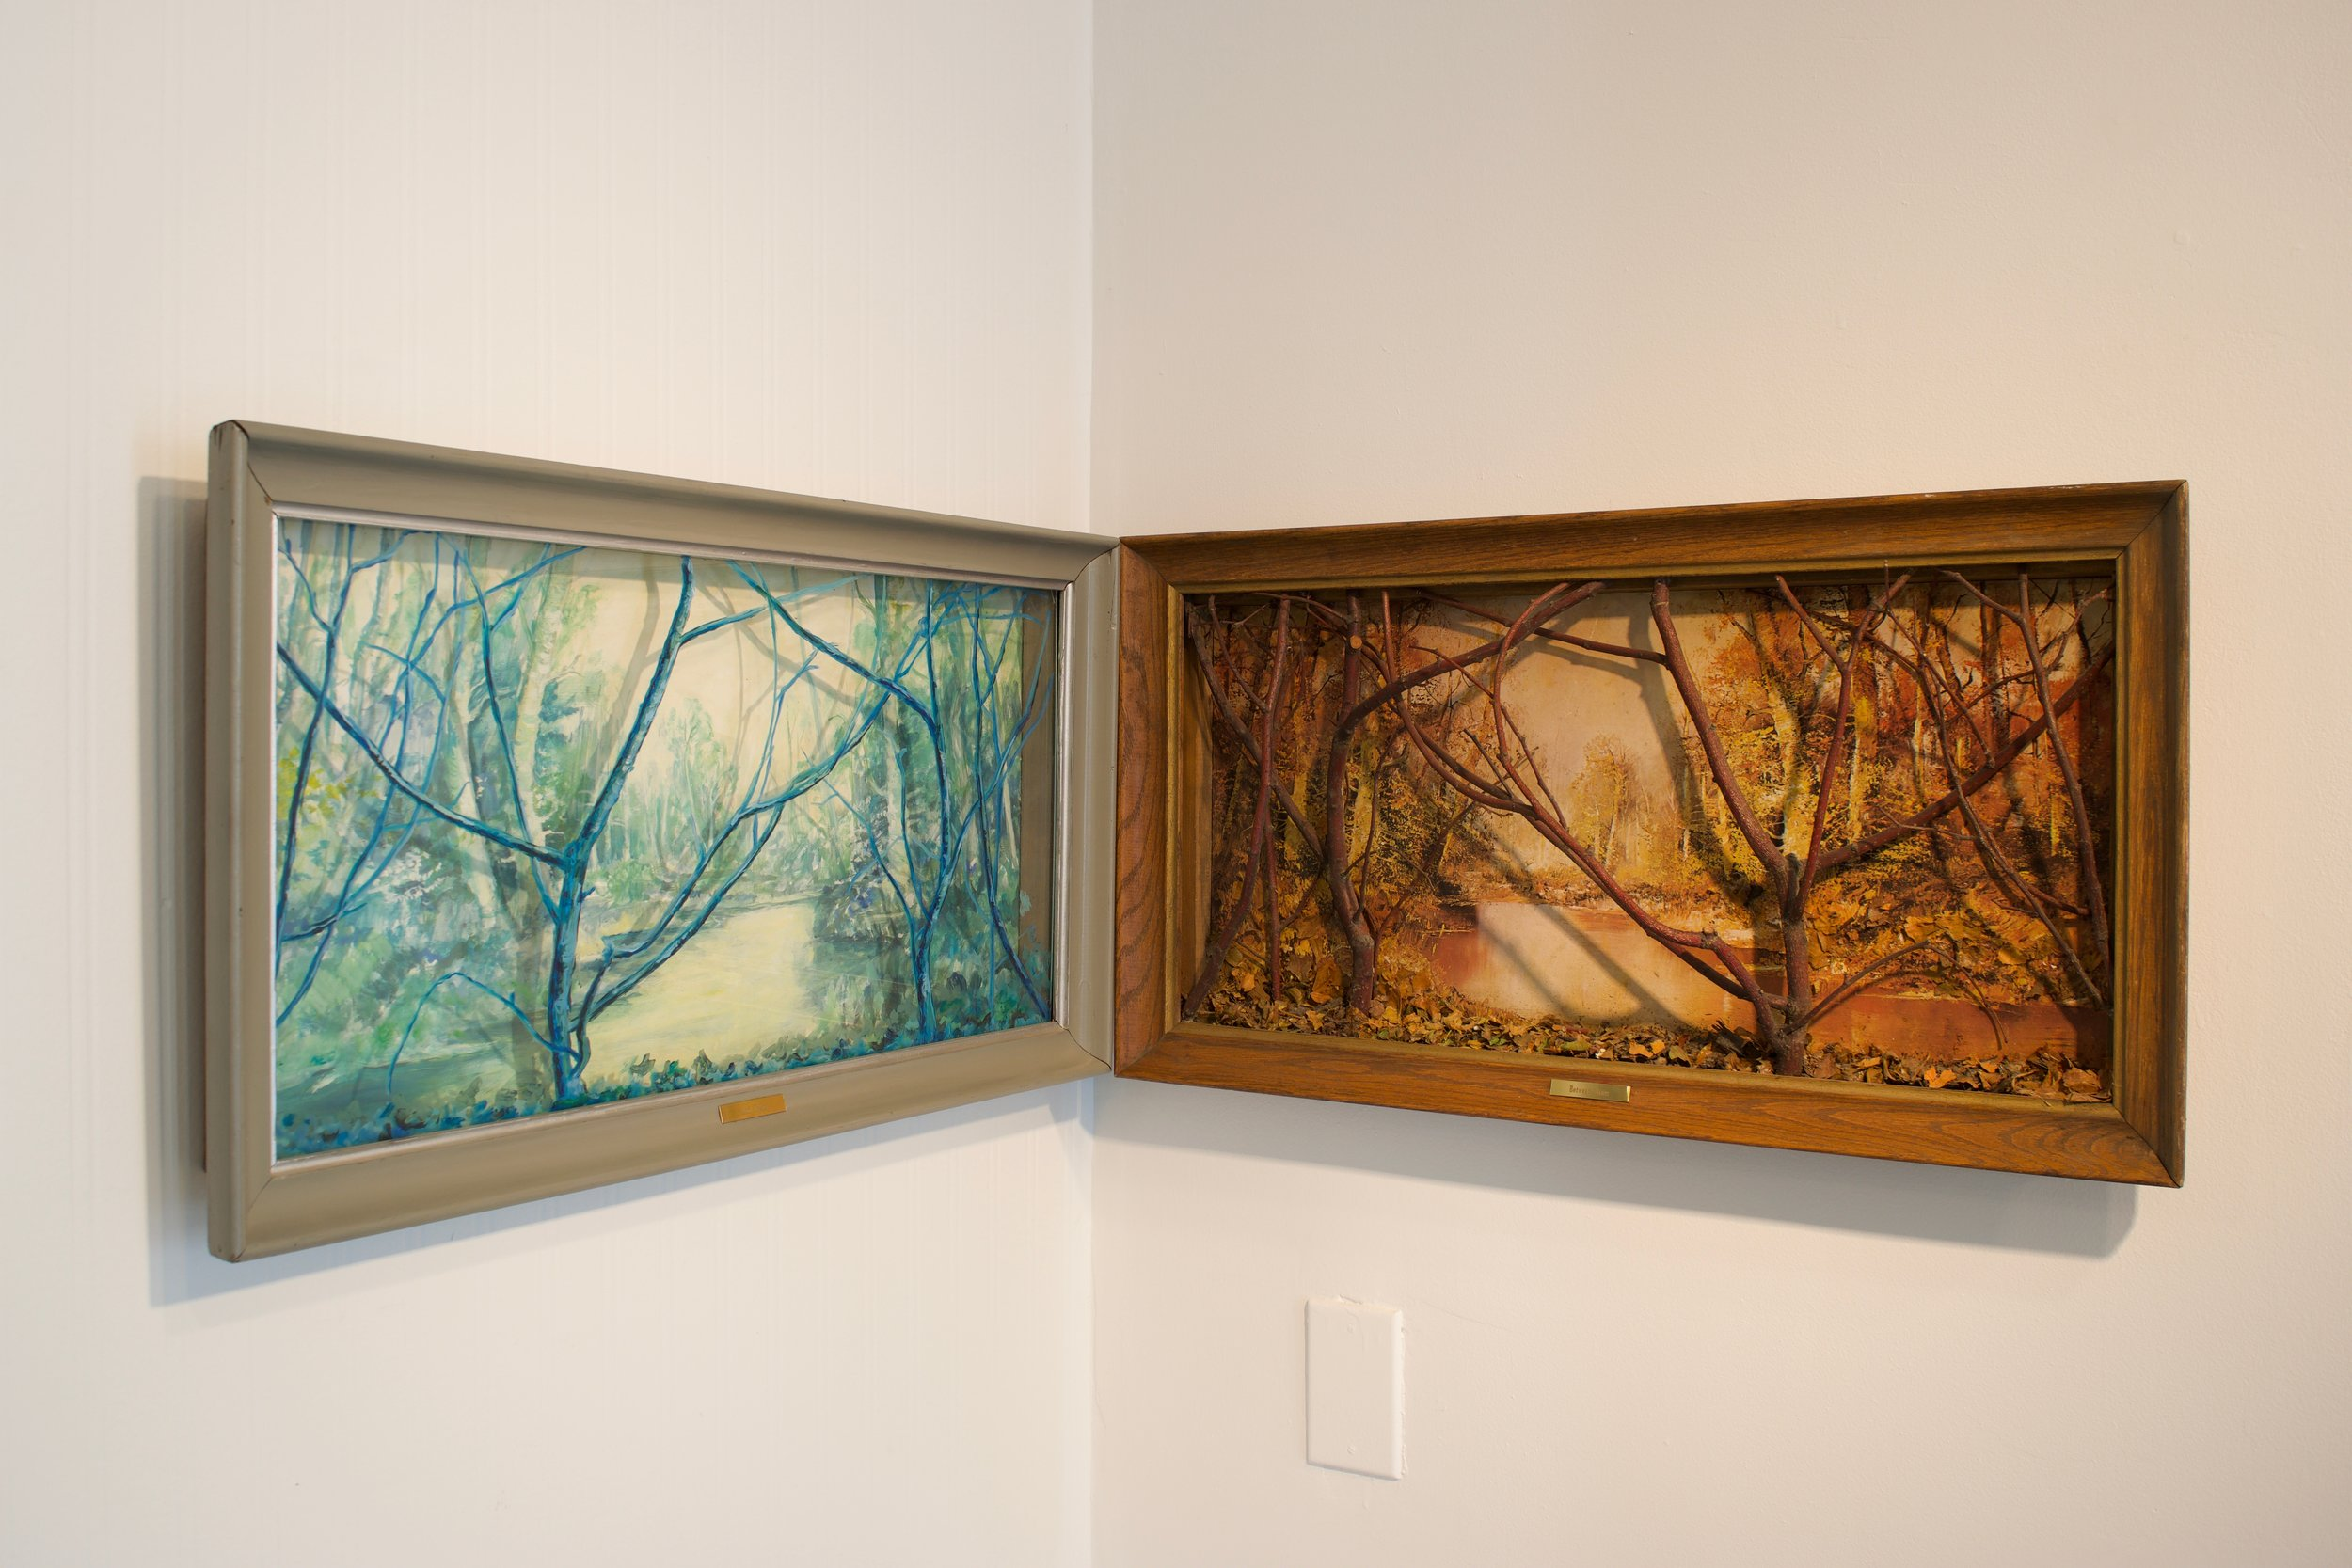 Mark Van Wagner, And There Between Here, 1989. Mixed media, 14 x 53 x 3 in.